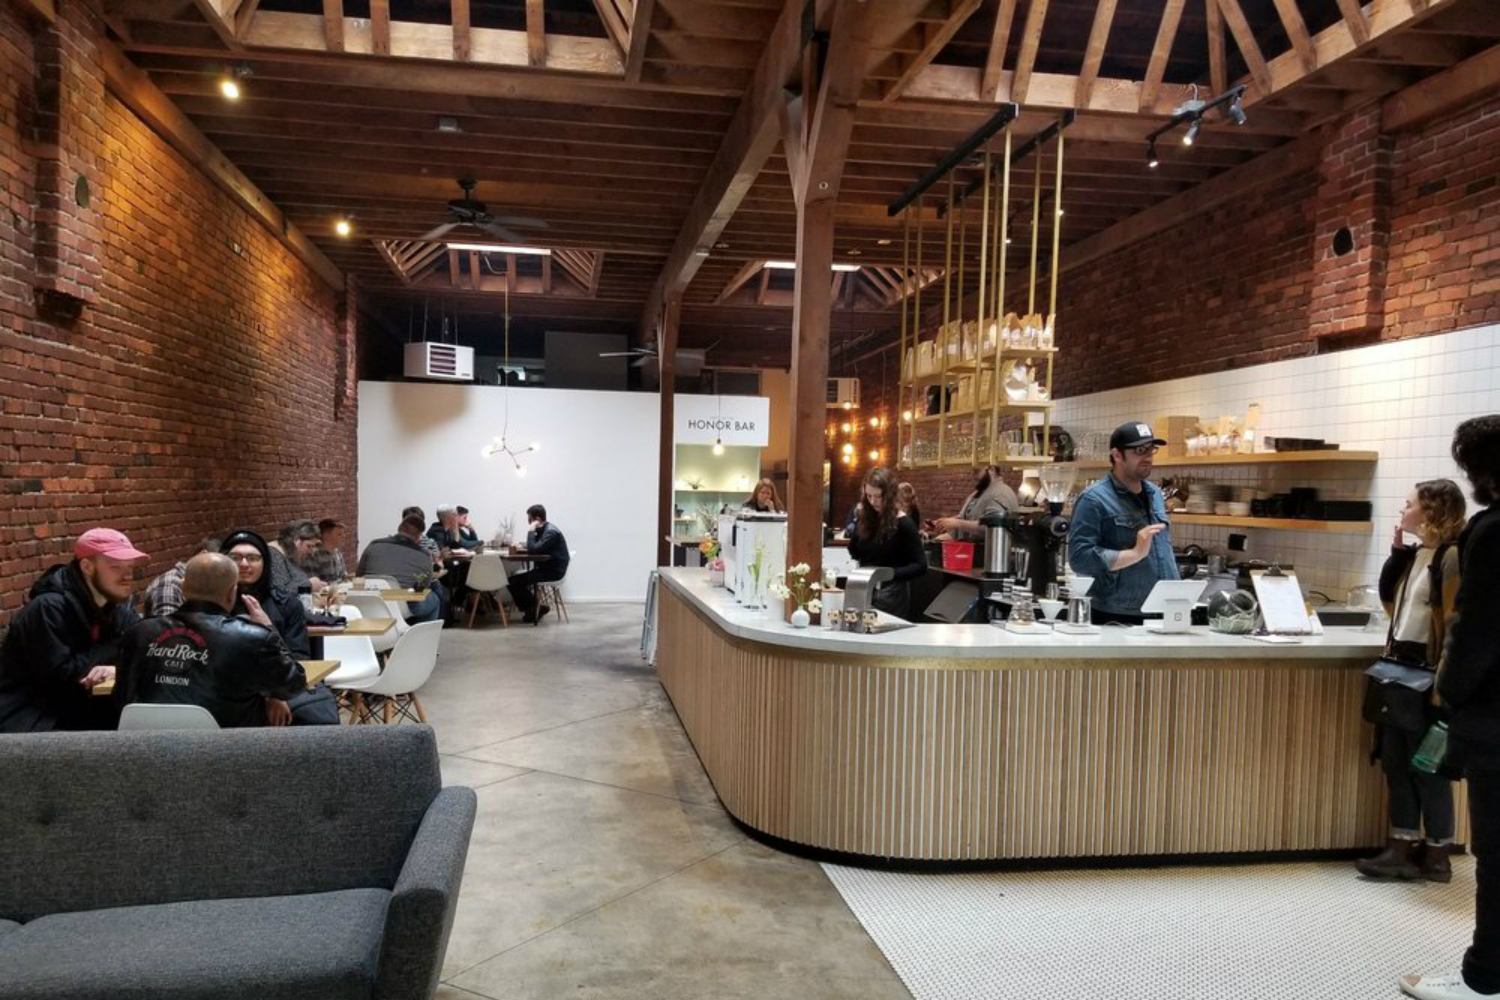 Narrative serves beverages made from coffee beans from around the world and roasted locally in Snohomish County and served in a 1921 building that is warm and inviting with natural wood and brick walls. (Image courtesy of Brad P. /{ }https://bit.ly/2Ttj8X7)